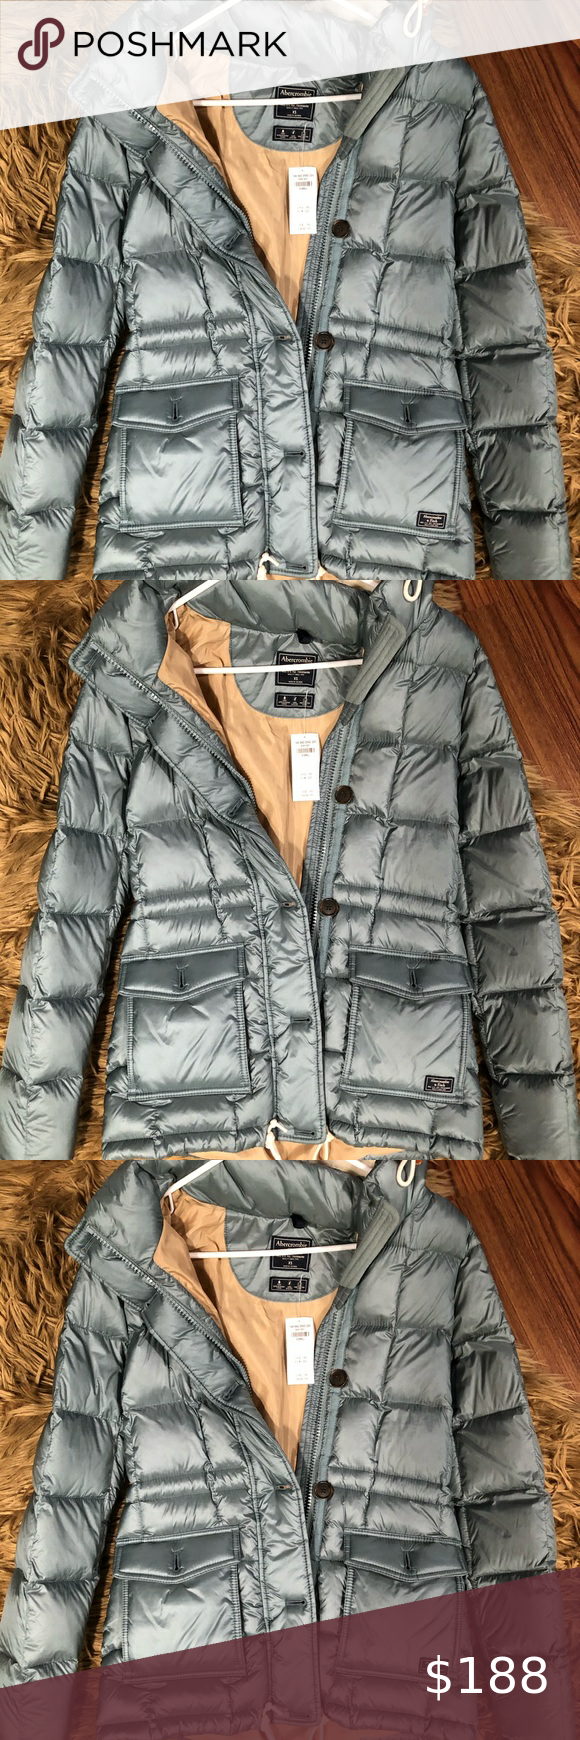 Abercrombie And Fitch Puffer Jacket Abercrombie And Fitch Jackets Jacket Brands Red Puffer Jacket [ 1740 x 580 Pixel ]